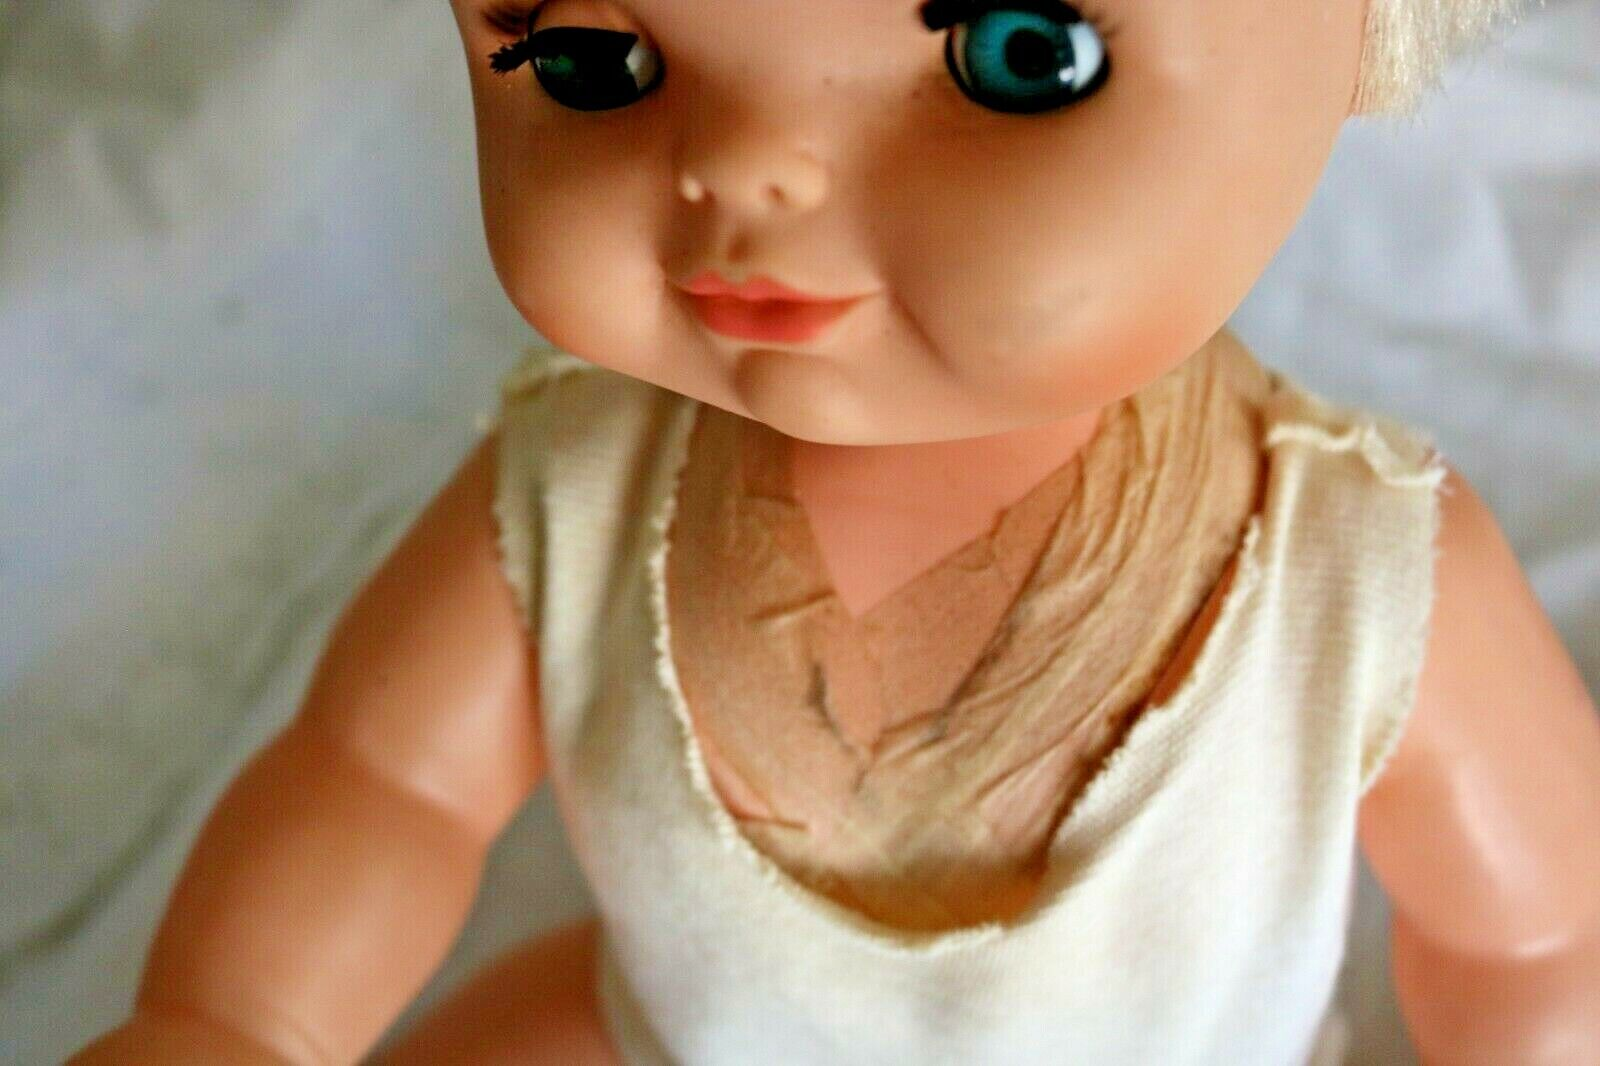 RARE 19 Vintage Girl Doll Arms And Legs Move Dated 1967 Old Collectible  - $12.85